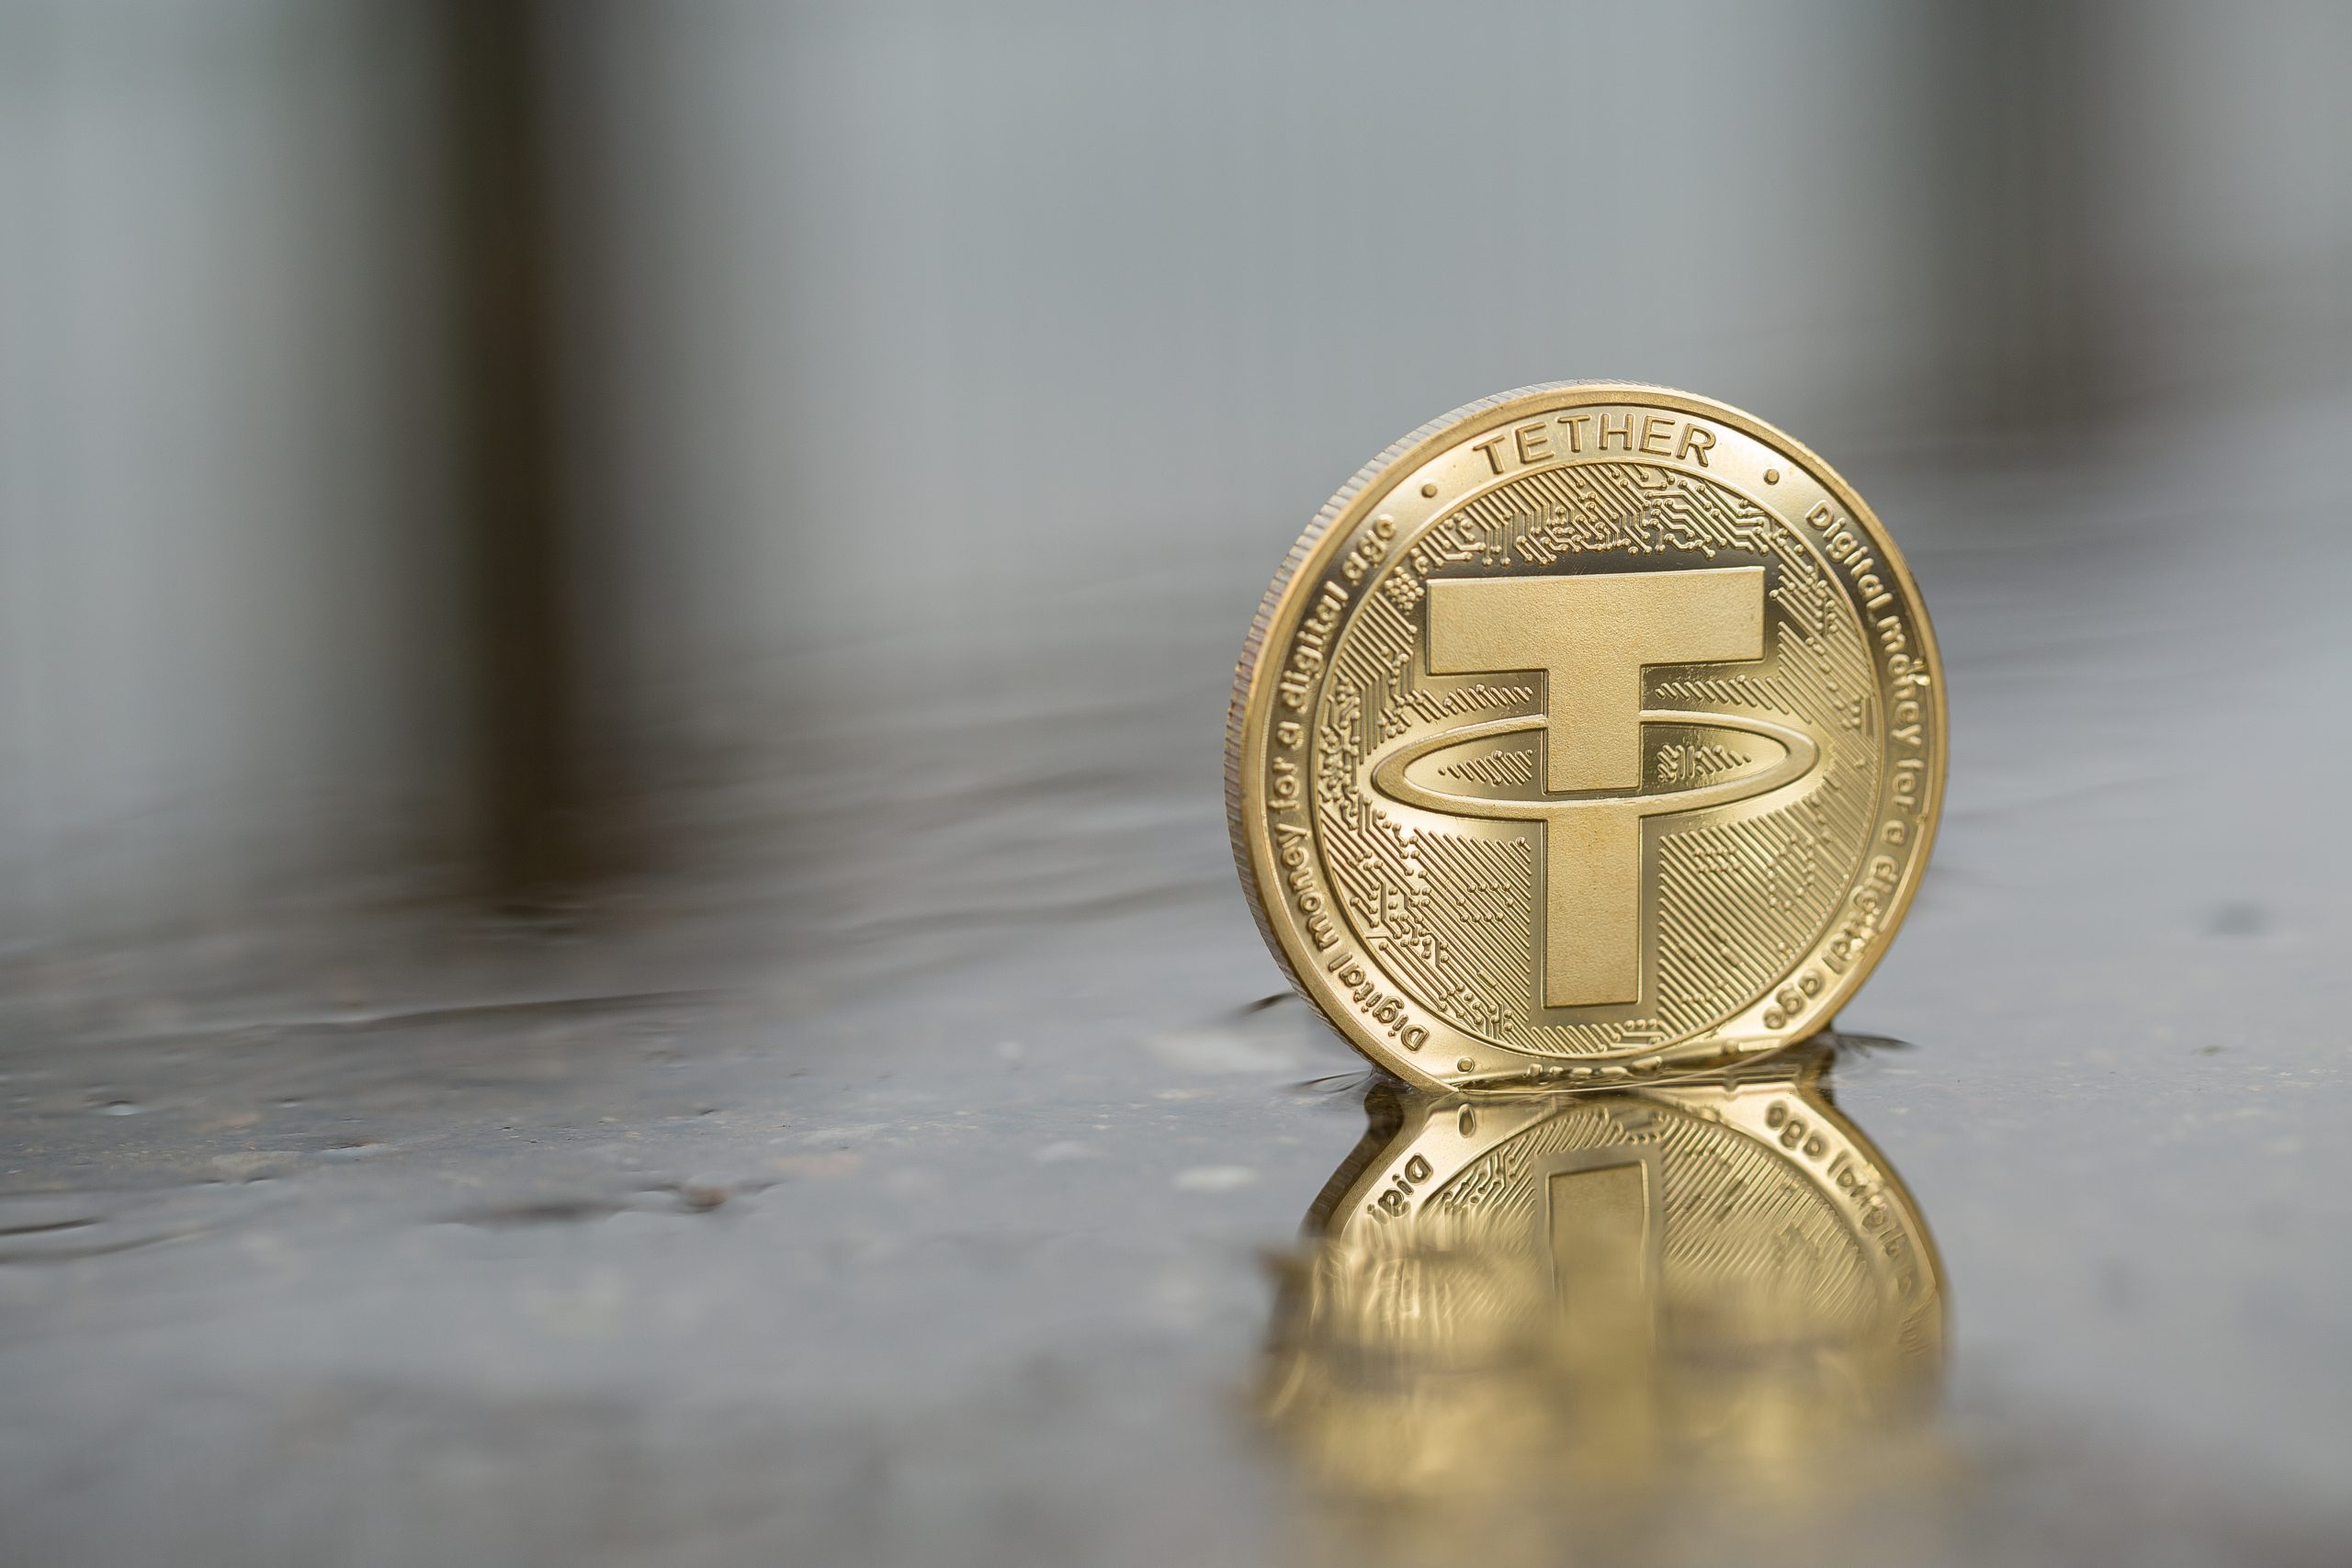 Is Tether Wonderful-looking a Scam to Enrich Bitcoin Investors?